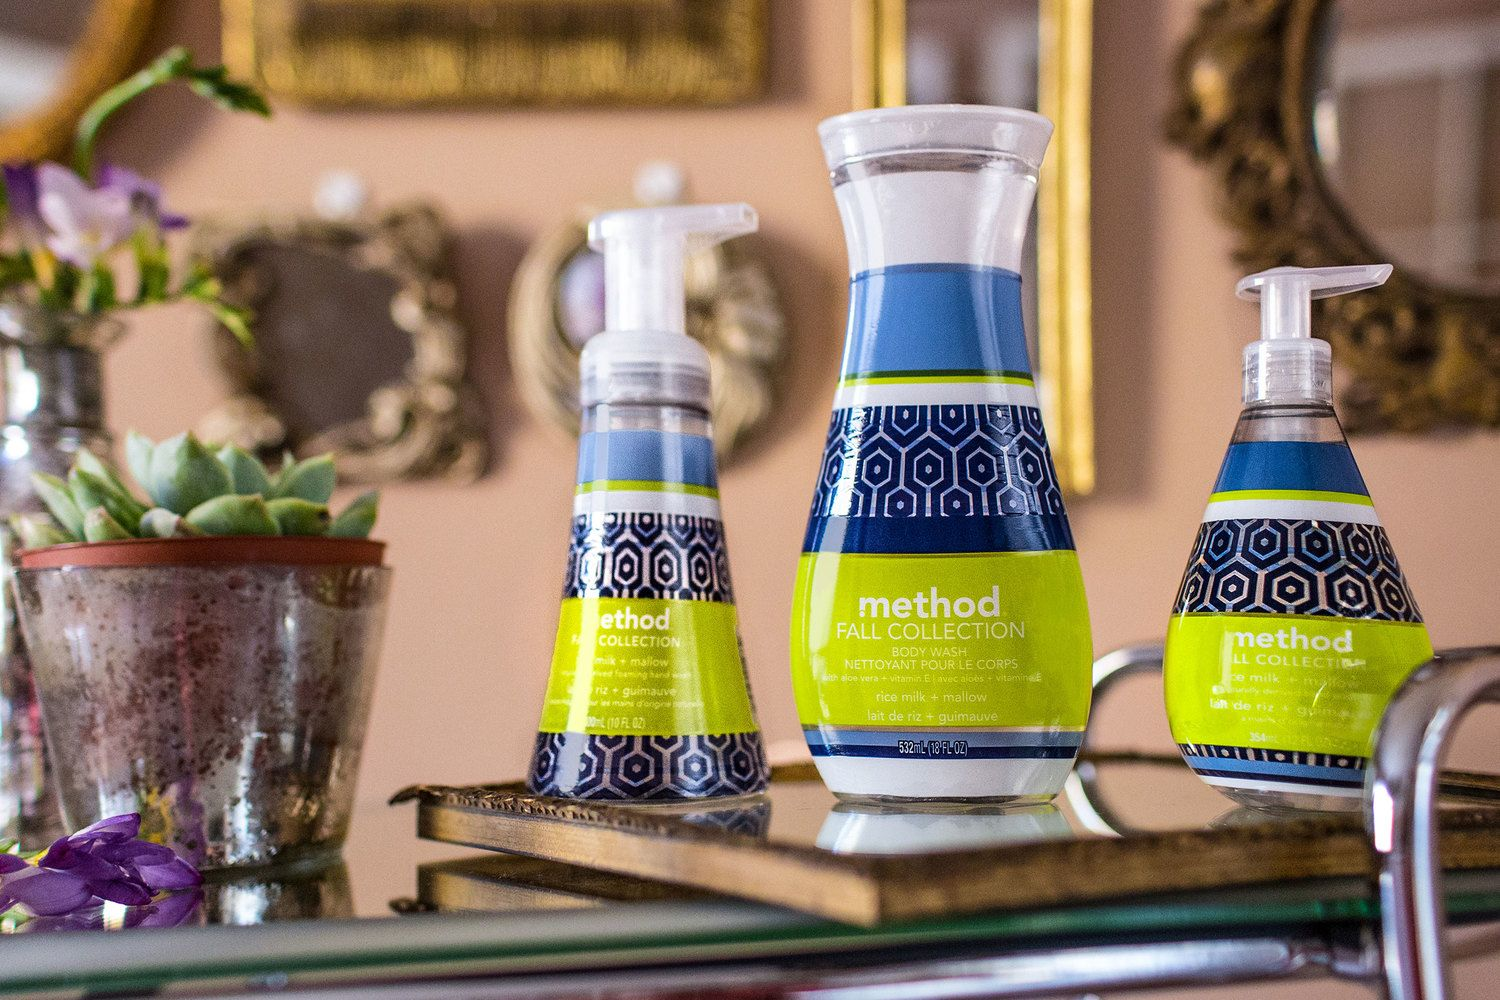 Method limited edition - fall collection via The Dieline